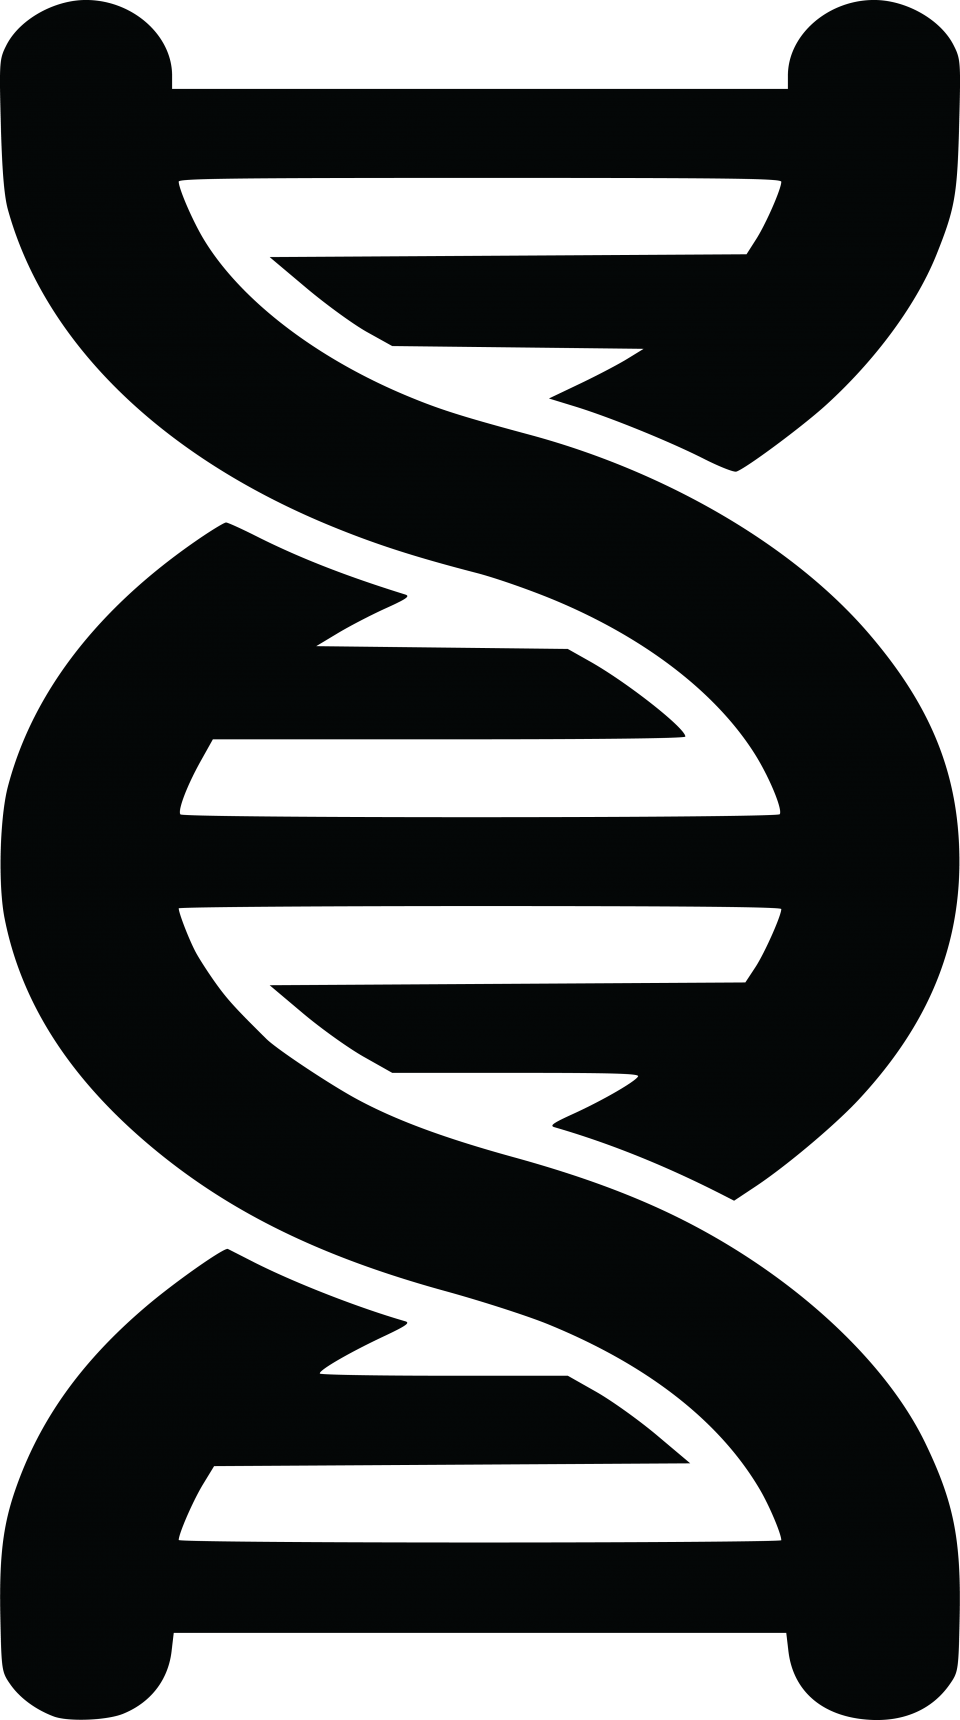 DNA PNG Image